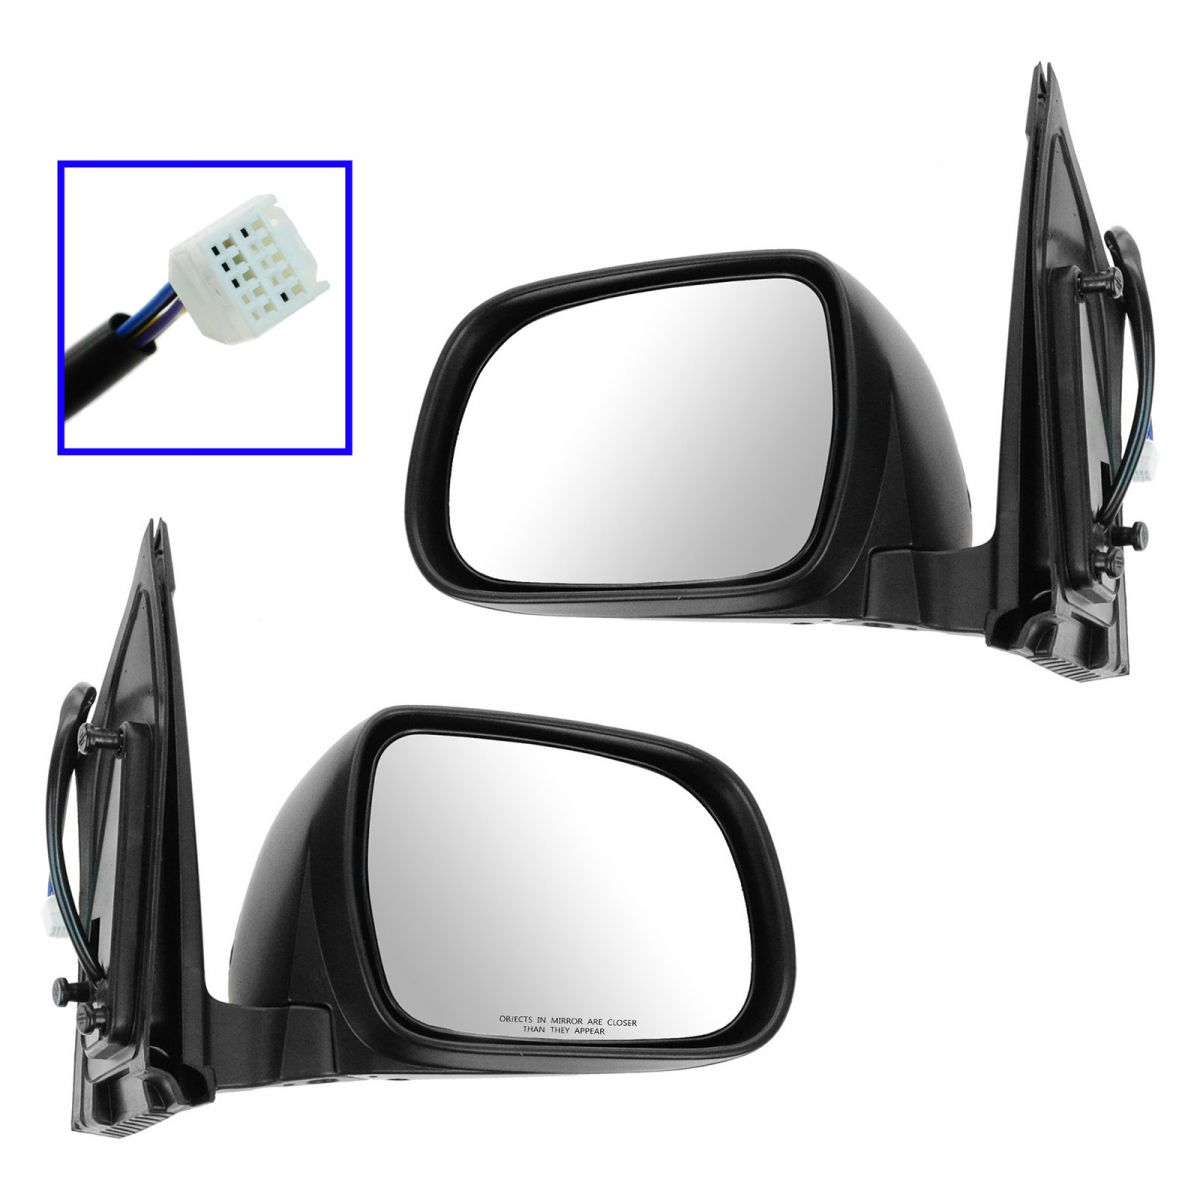 Hyundai Tuscon Wing Mirror Gl ass,Right Hand Side,2004 to 2018